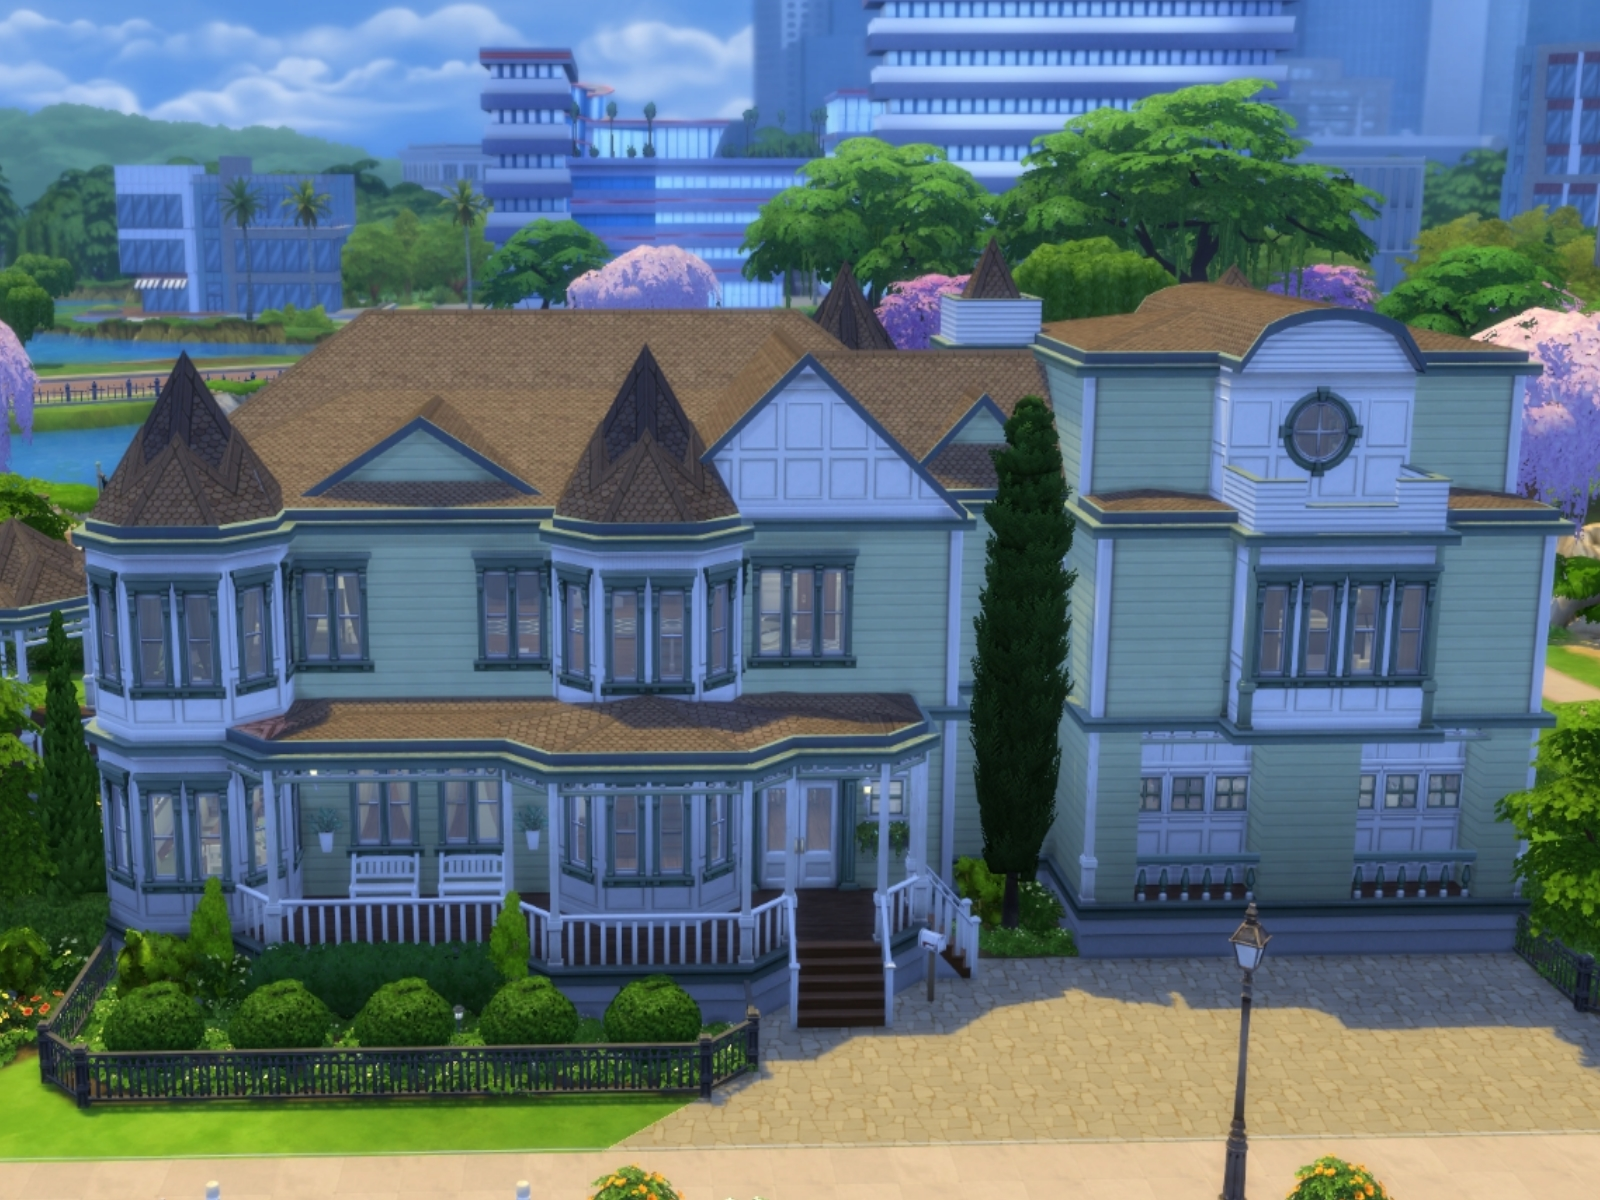 how to buy a house on sims 4 ps4